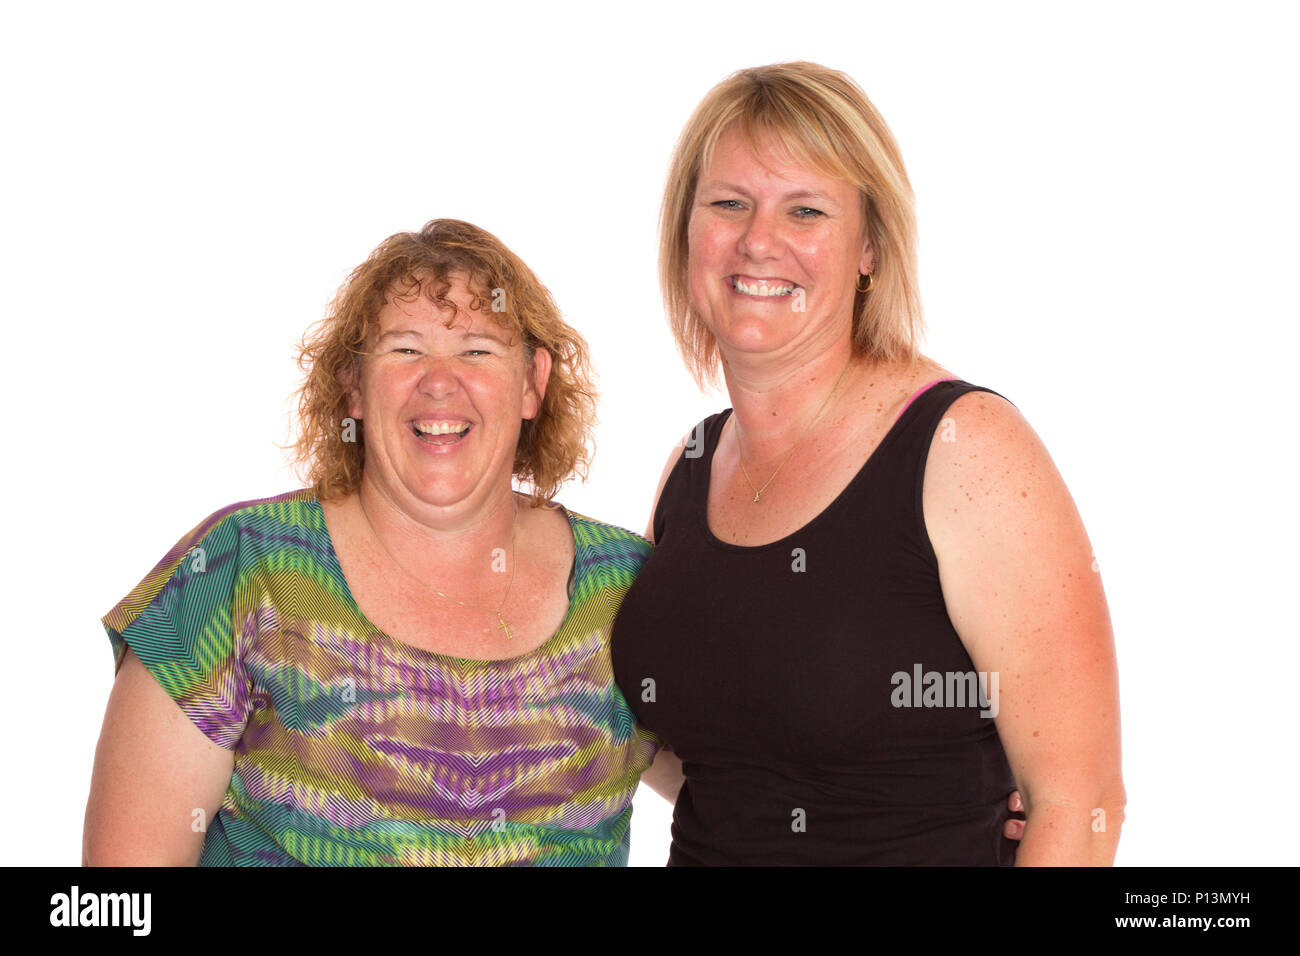 Two average middle aged women standing together for a portrait, on a white background. - Stock Image